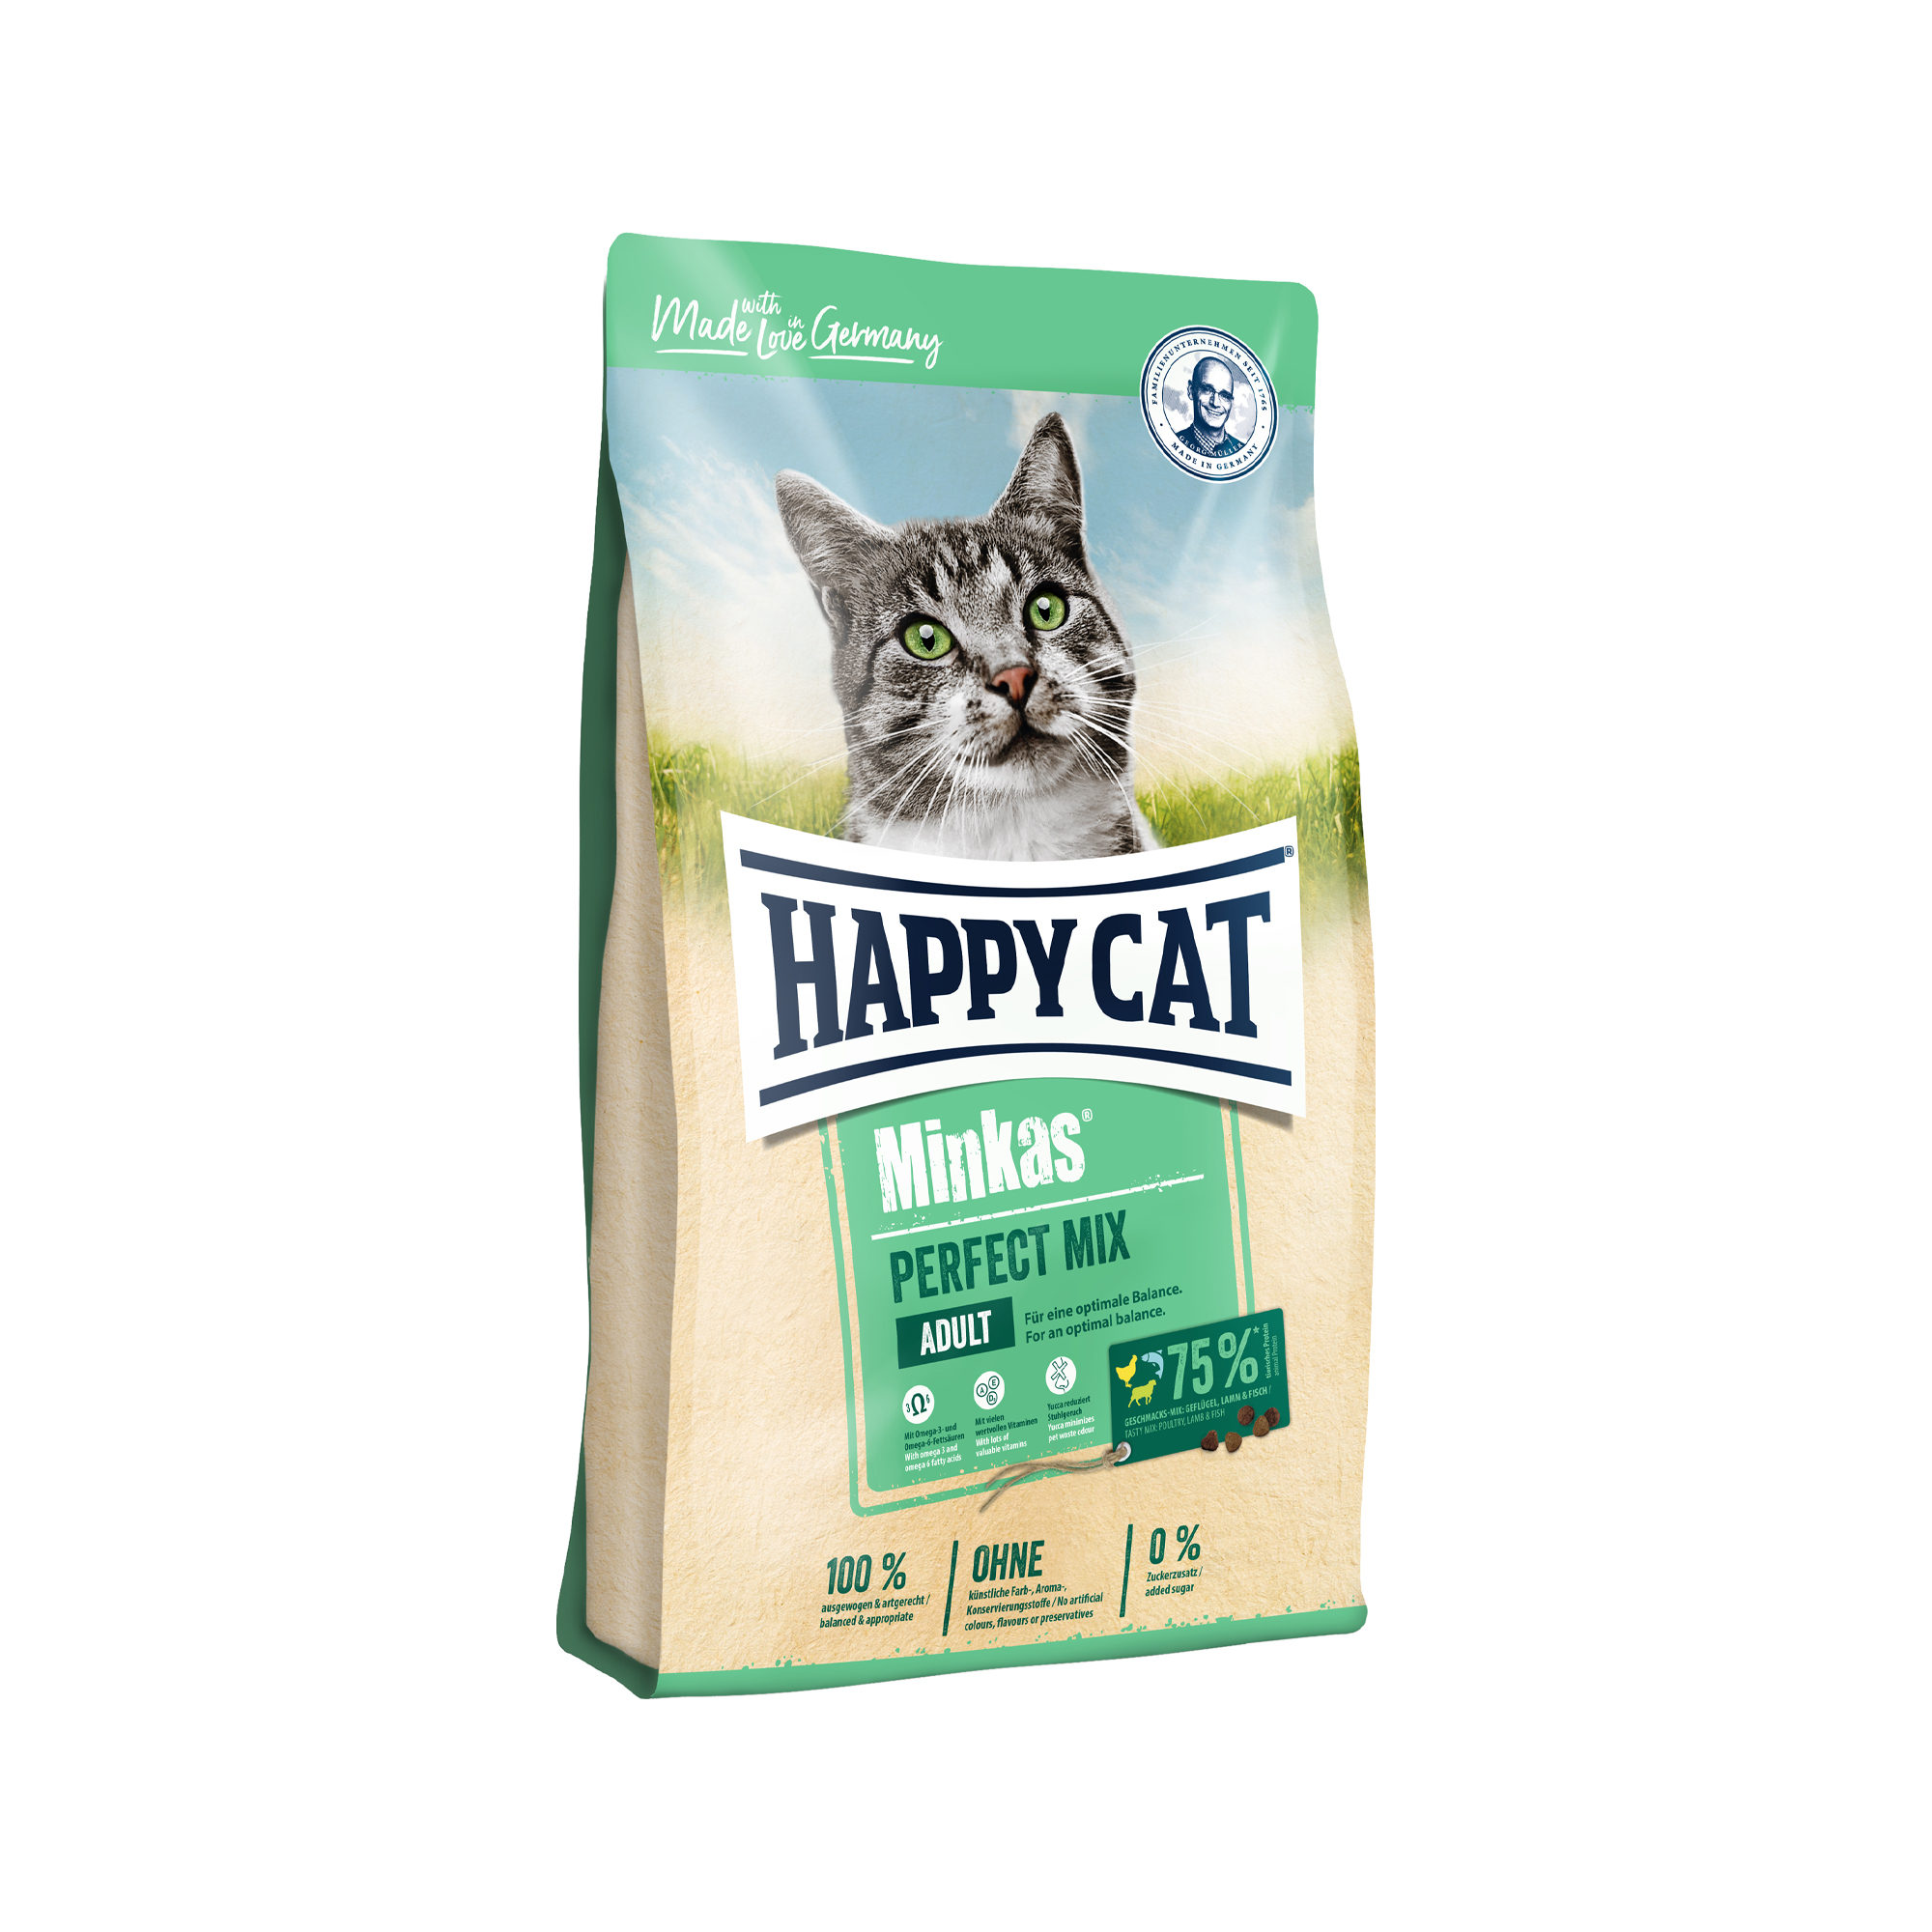 Happy Cat Minkas Perfect Mix Adult Katzenfutter - Geflügel, Lamm & Fisch